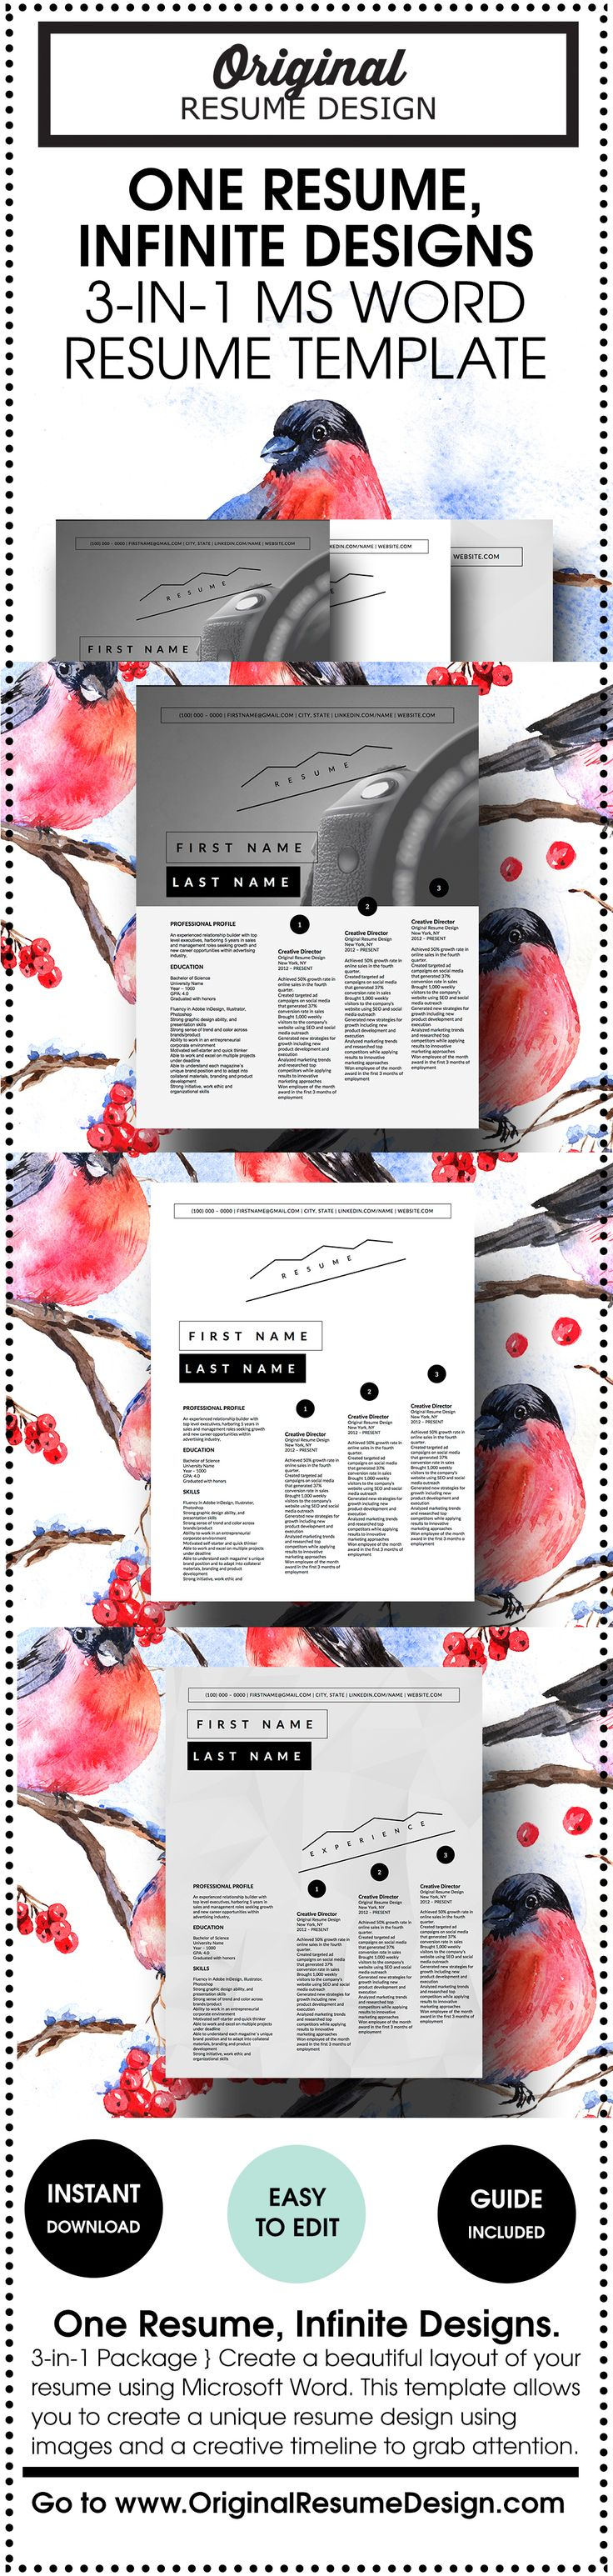 126 Best Resume Images On Pinterest Resume Ideas Cv Design And